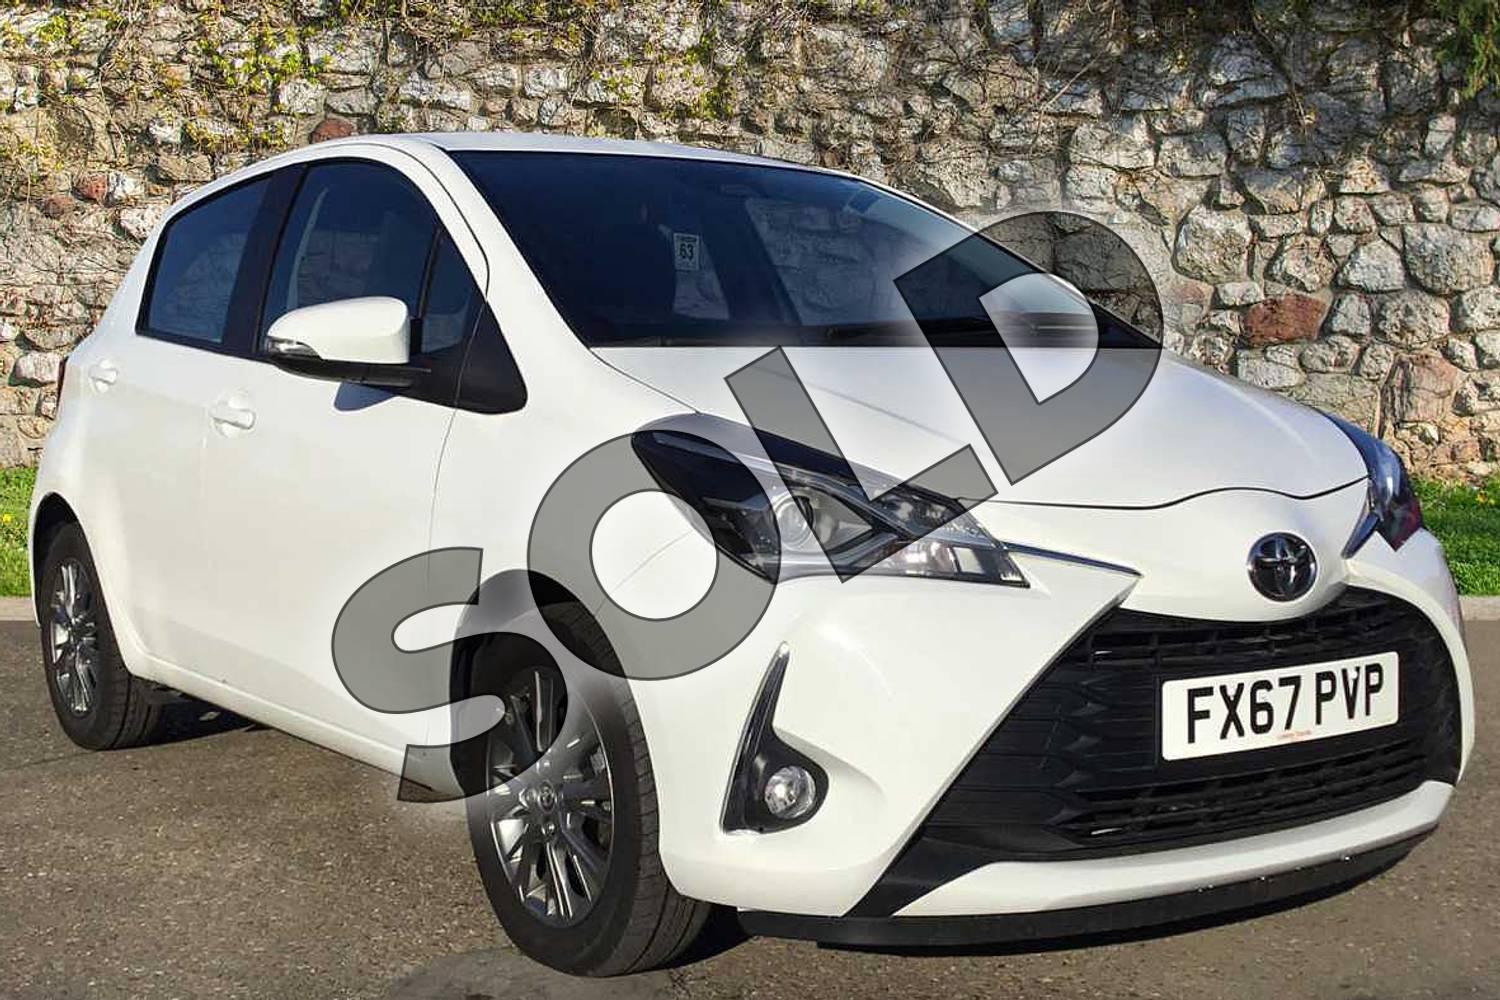 2017 Toyota Yaris Hatchback 1.5 VVT-i Icon 5dr in Pure White at Listers Toyota Boston